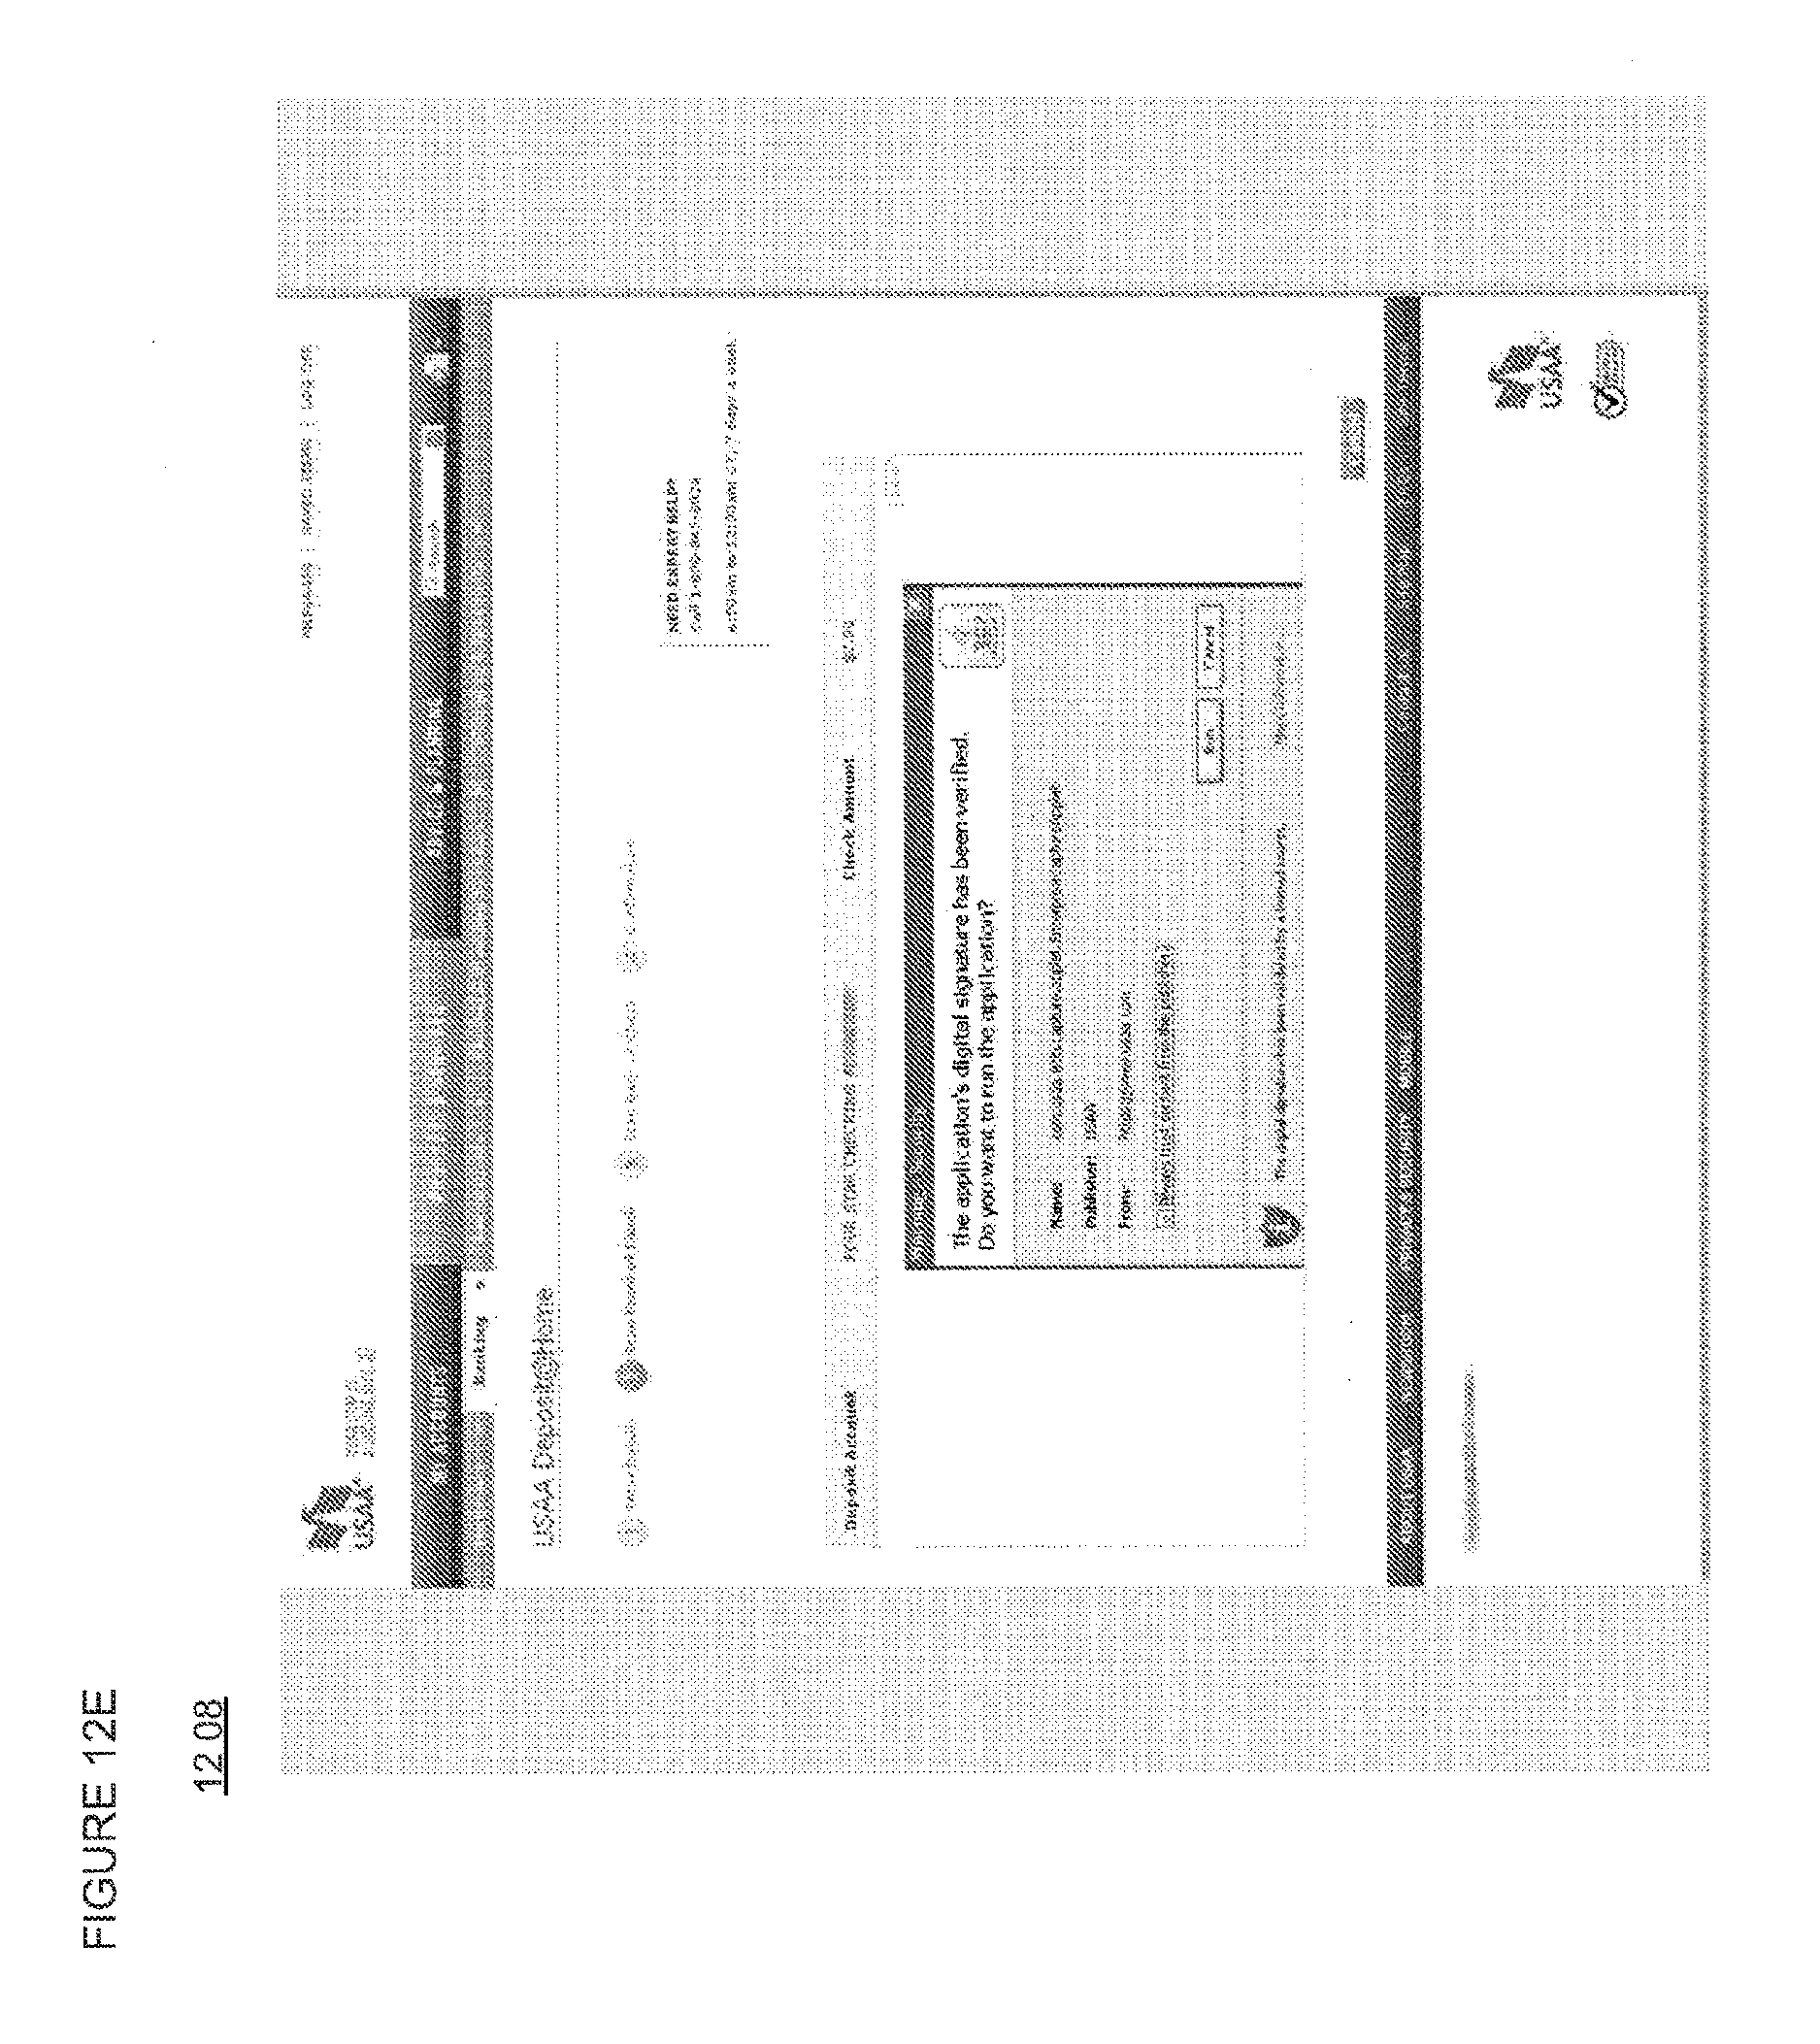 Patent Us 9779452 B1 865 Ibm Usb Wiring Diagram Front 0 Petitions